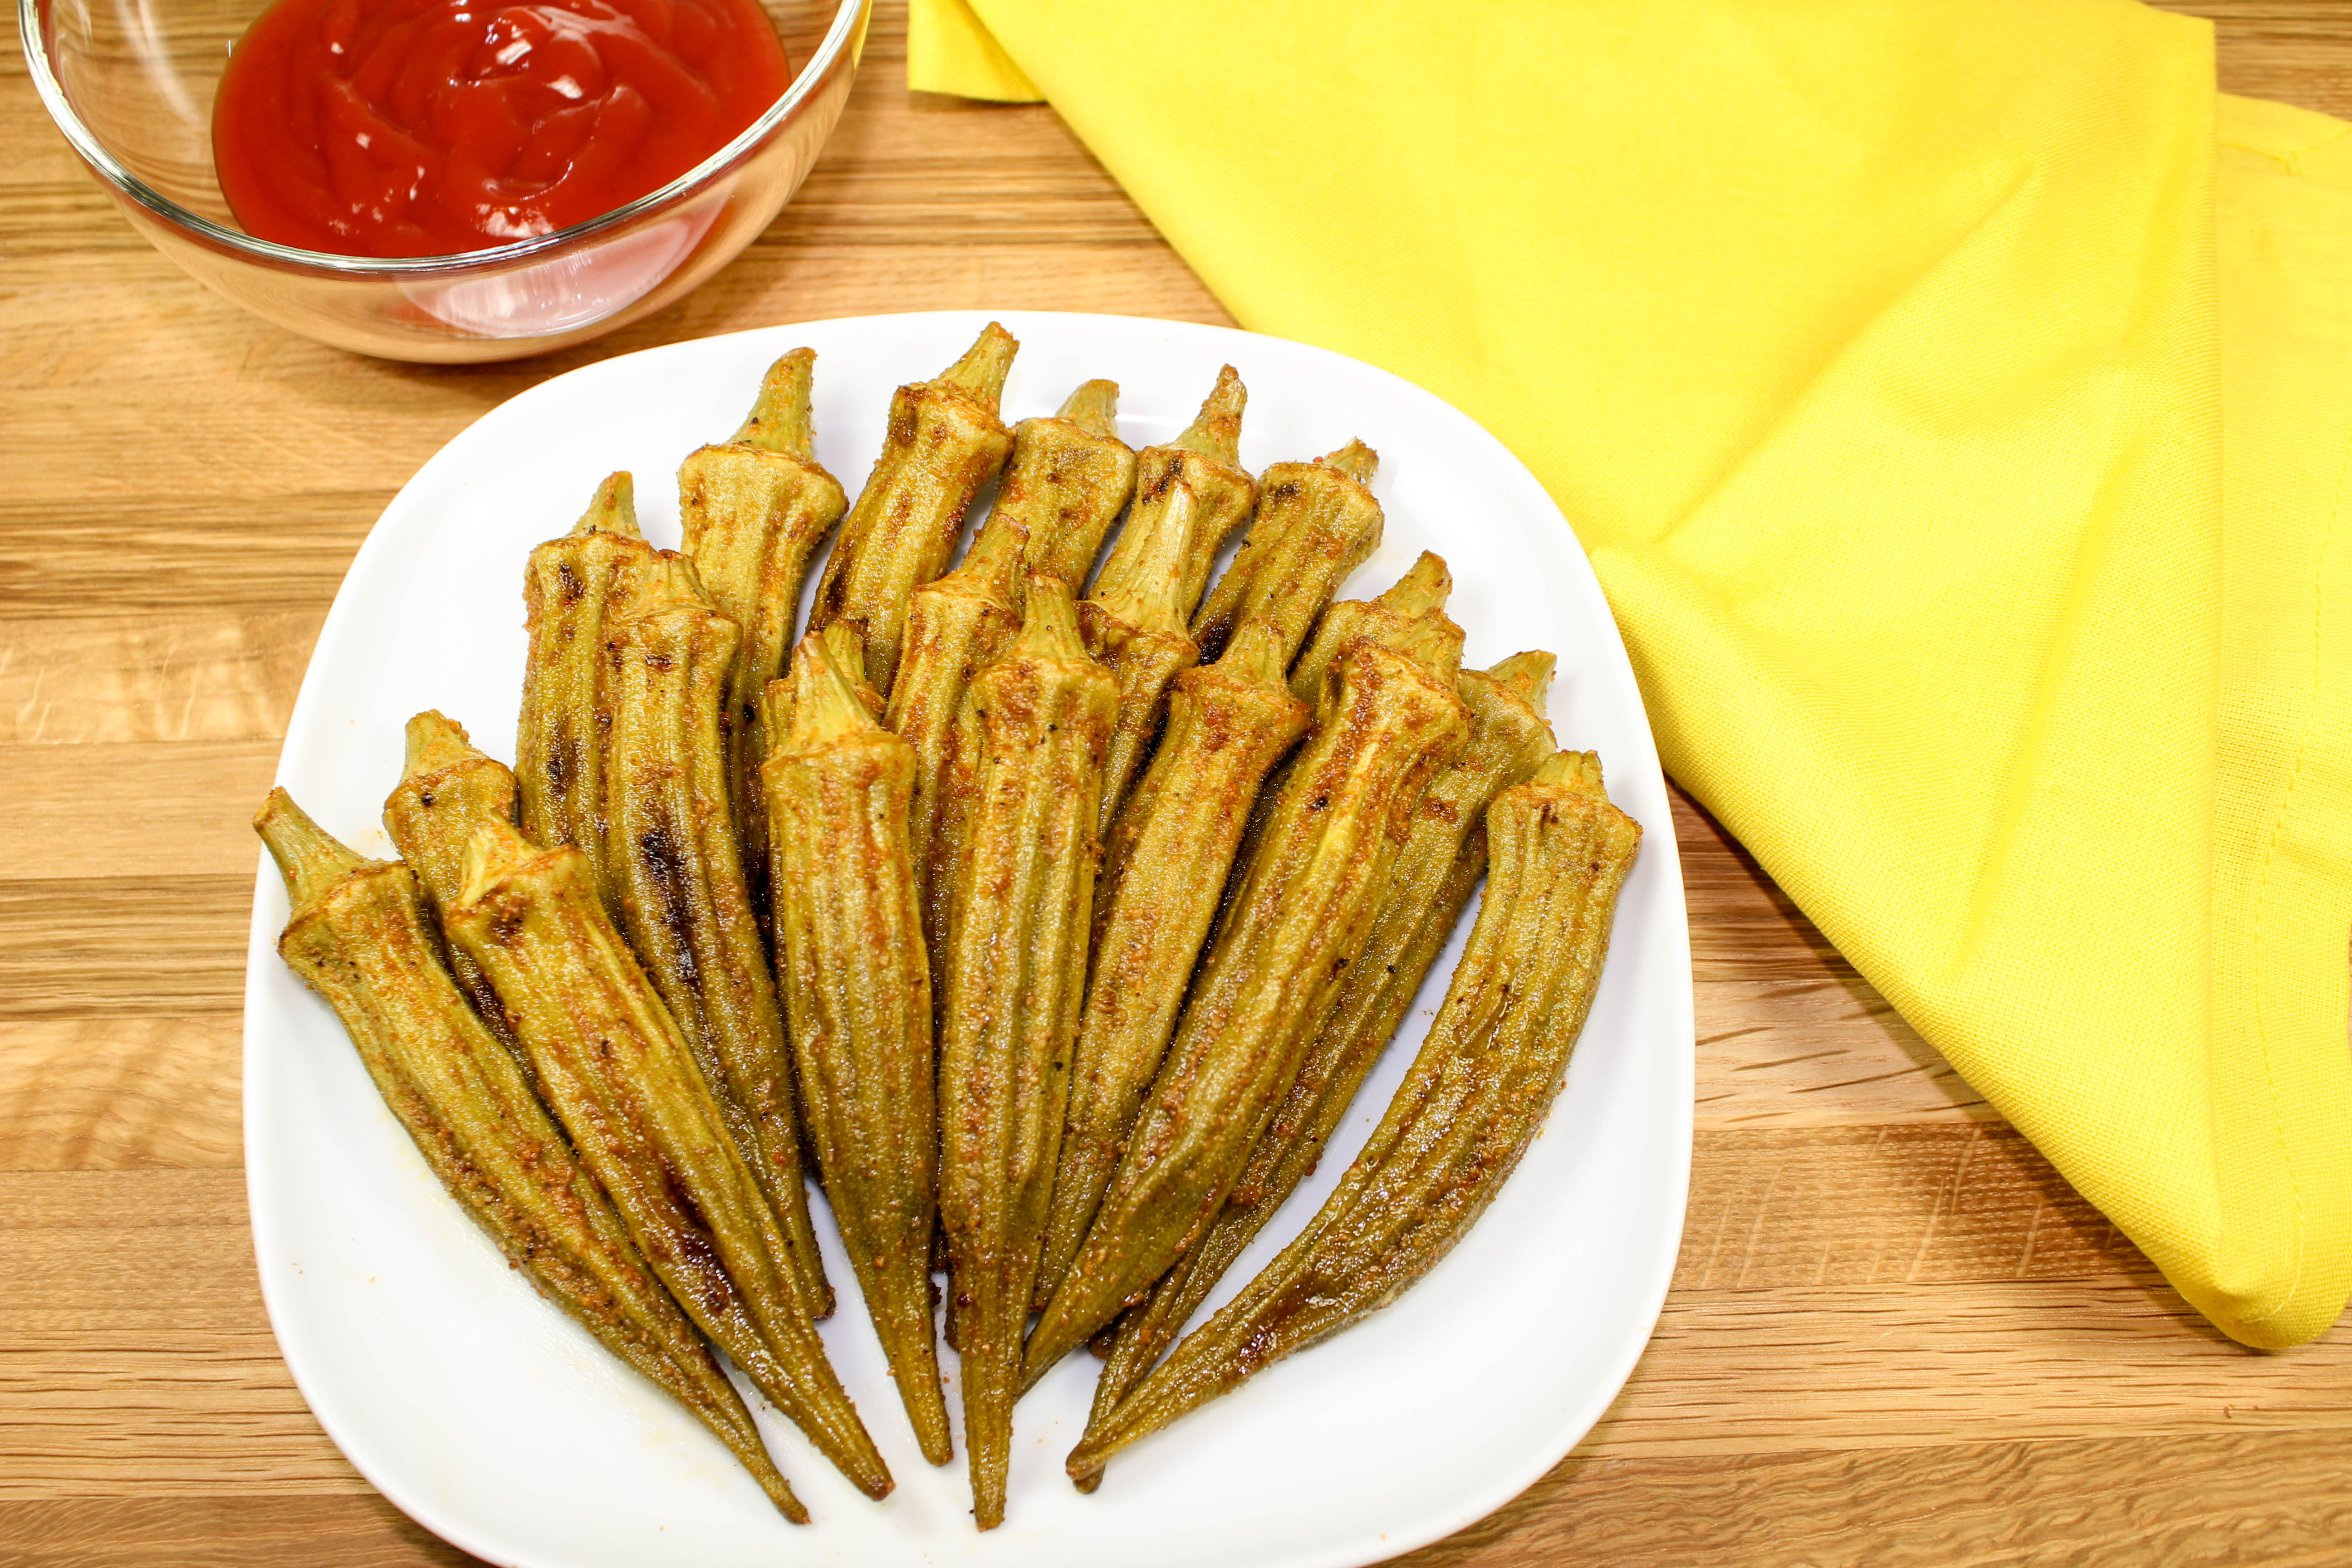 Cajun Baked Okra is packed with Cajun seasonings, crispy, and easy to make. Healthy alternative to fried okra! Weight Watchers friendly recipe. www.bitesofflavor.com